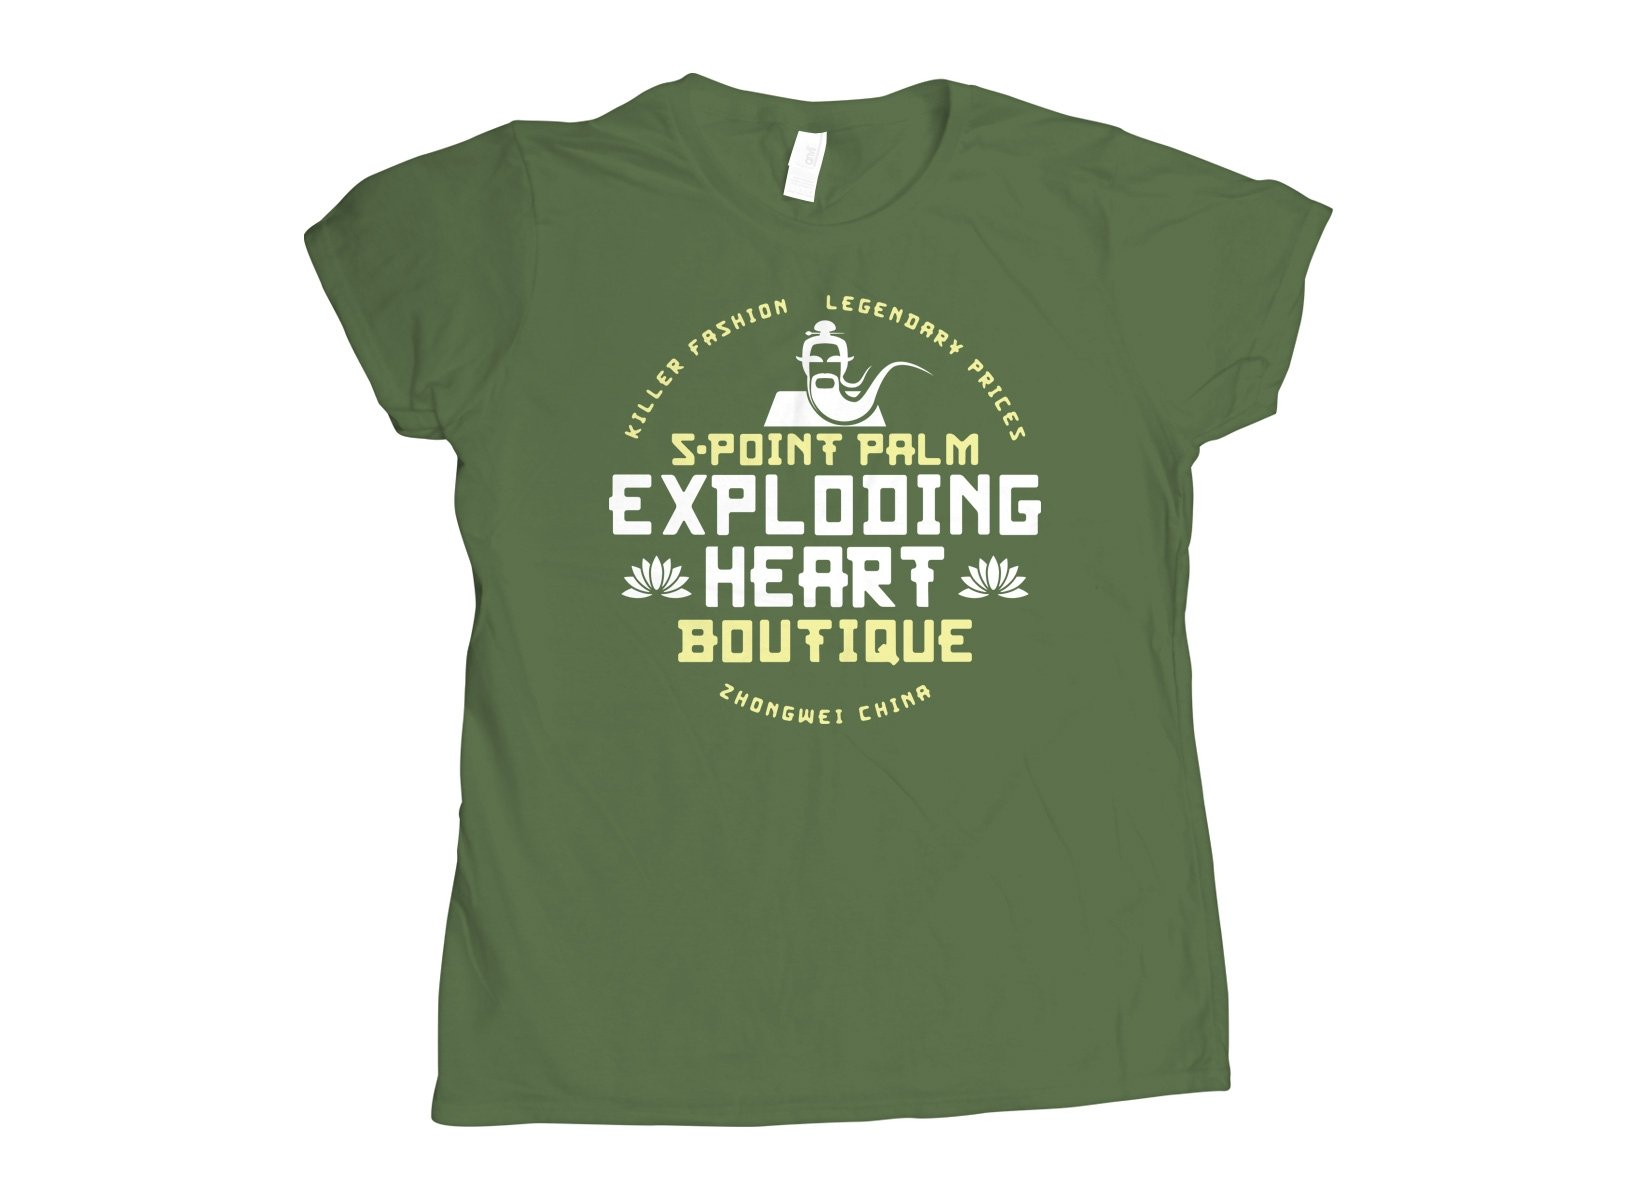 5-Point Palm Exploding Heart Boutique on Womens T-Shirt